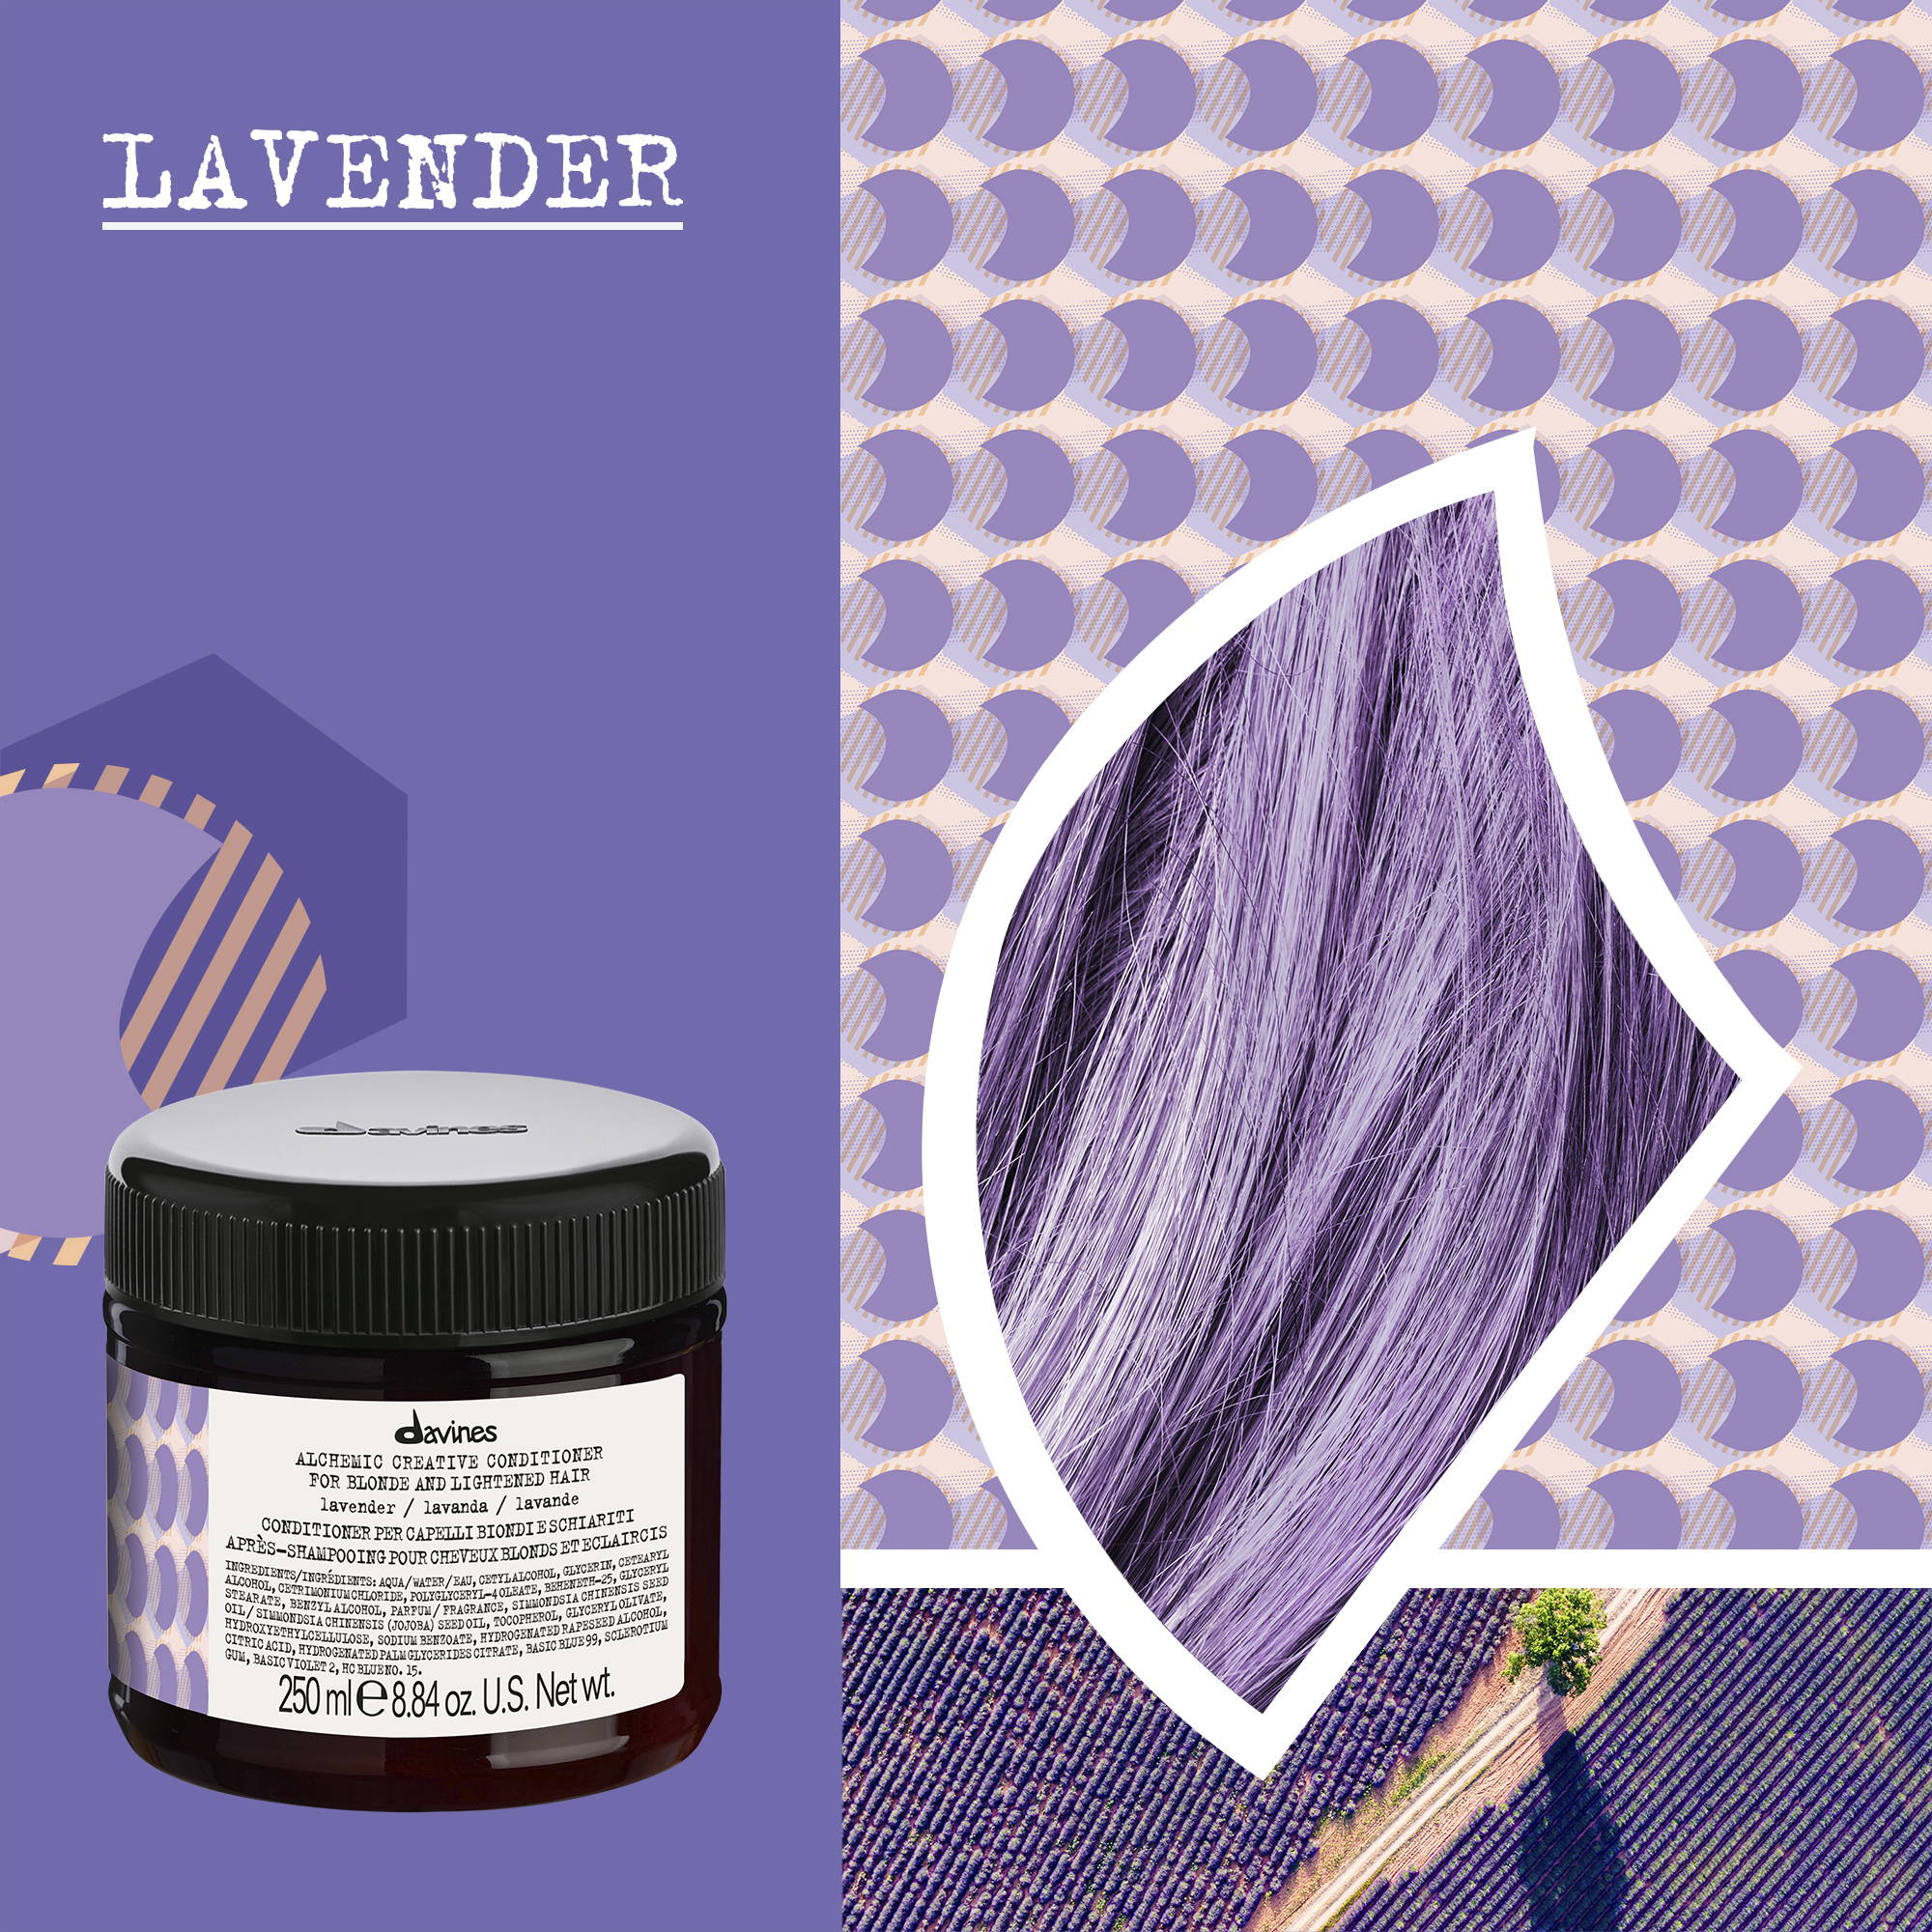 Lavender Alchemic Creative Conditioner